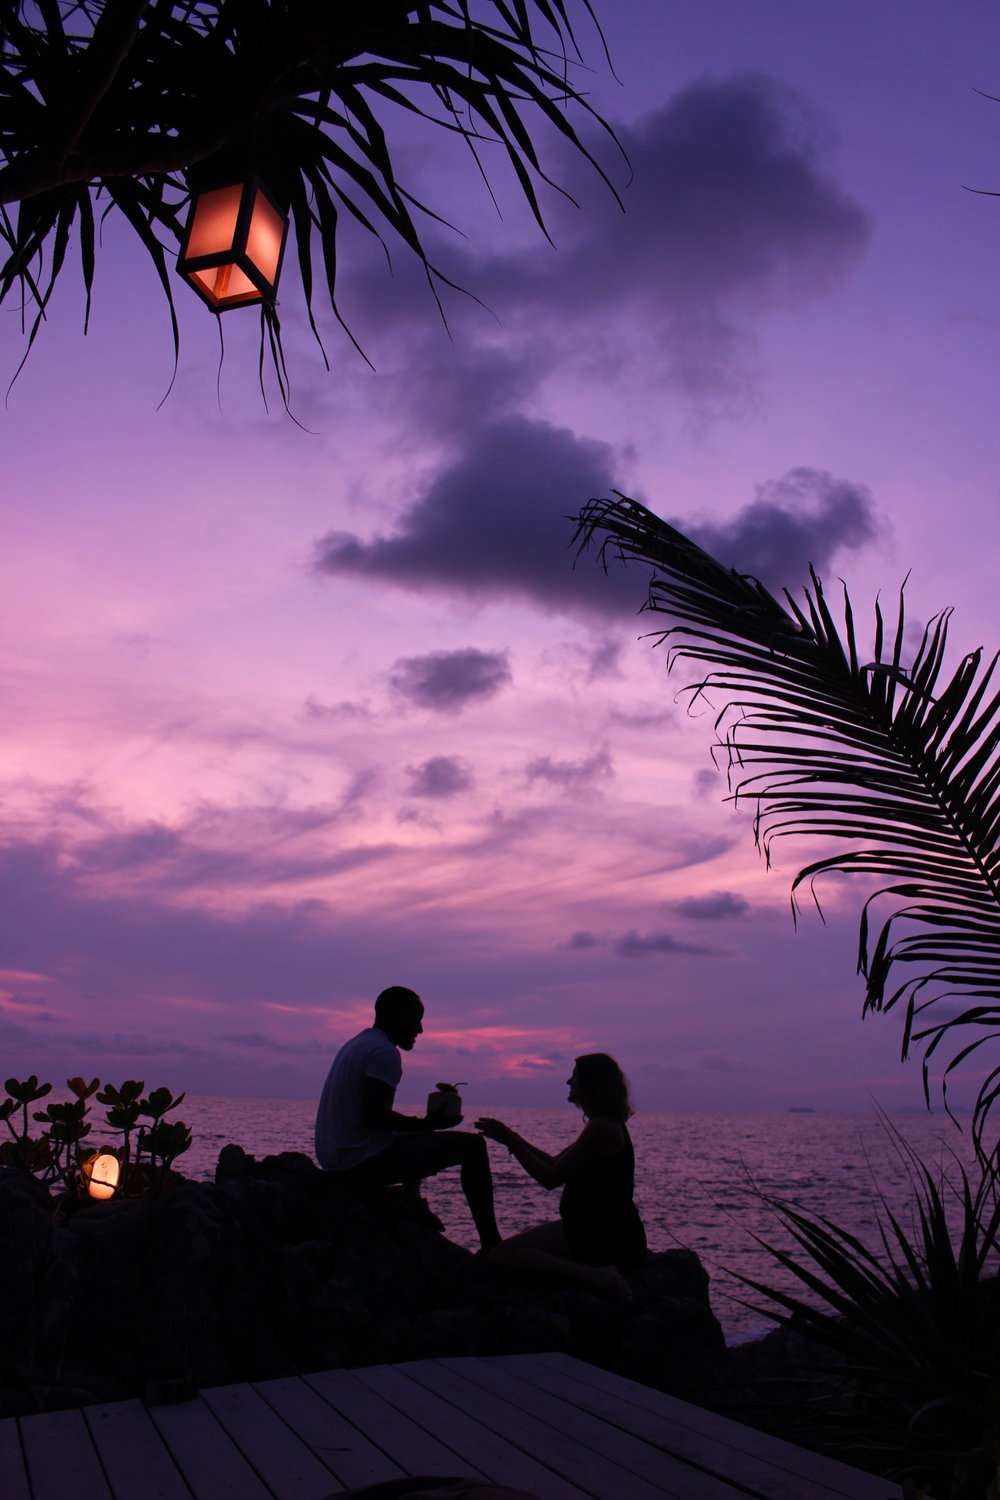 silhouette of a man and woman with a bright purple sunset sky over the sea at Moonlight Exotic Bay Resort, Koh Lanta